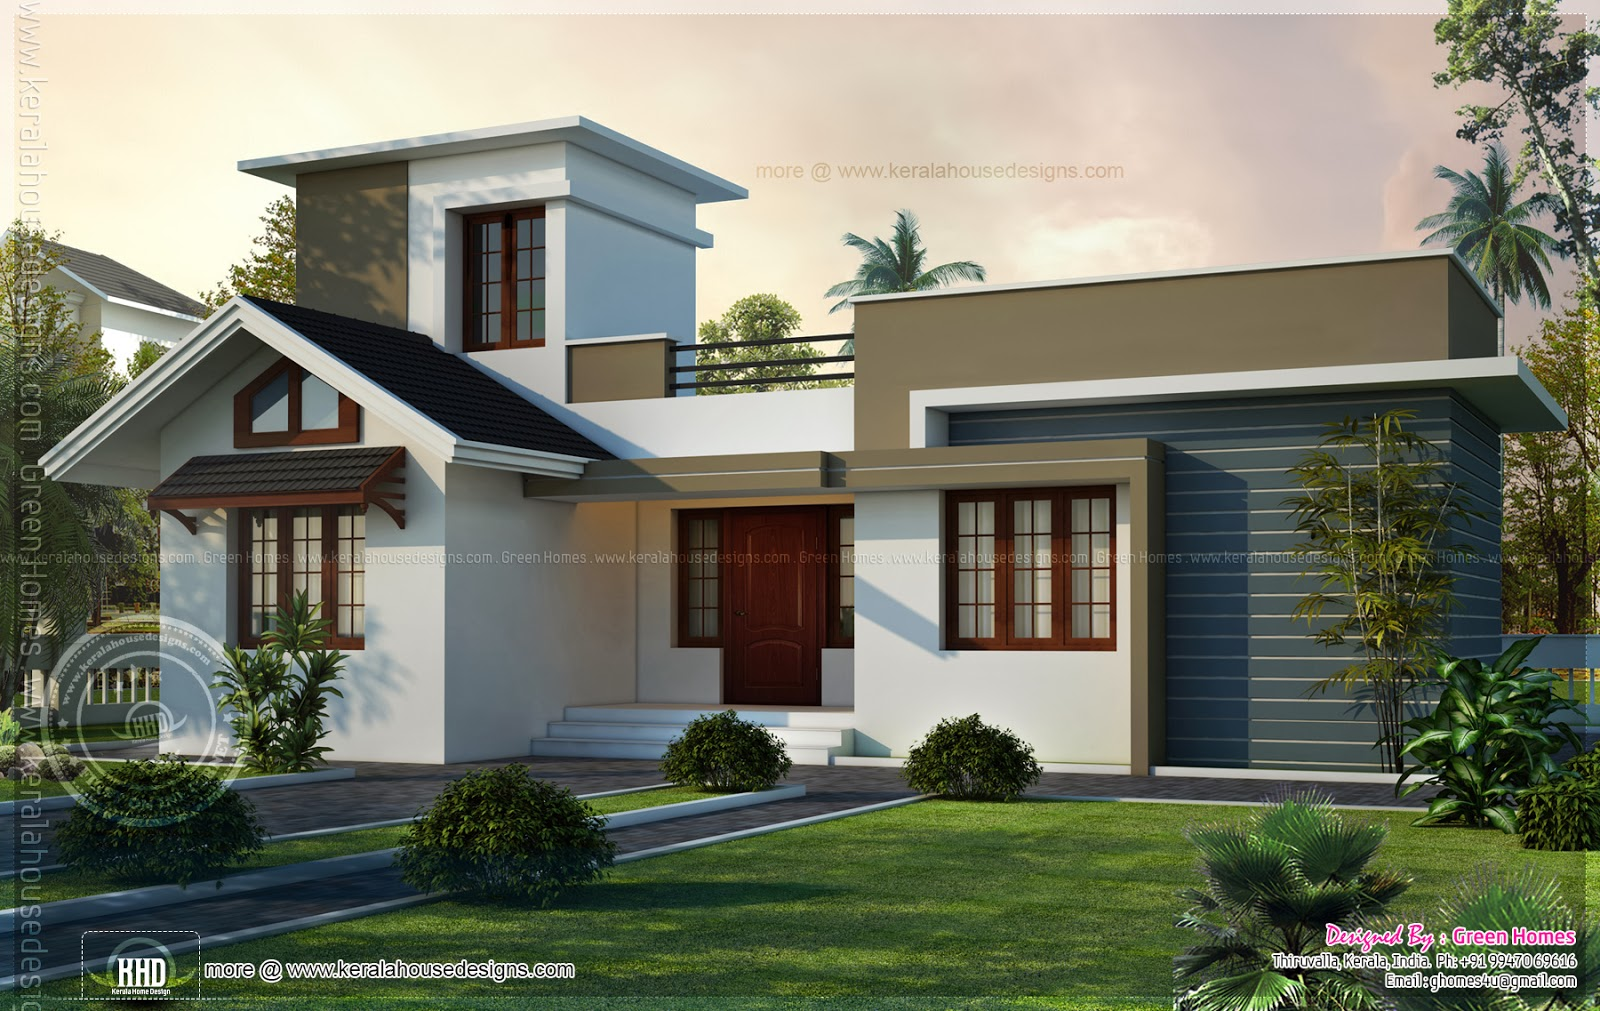 house with stair room - 17+ Small House Plans In Kerala With Photos  Images